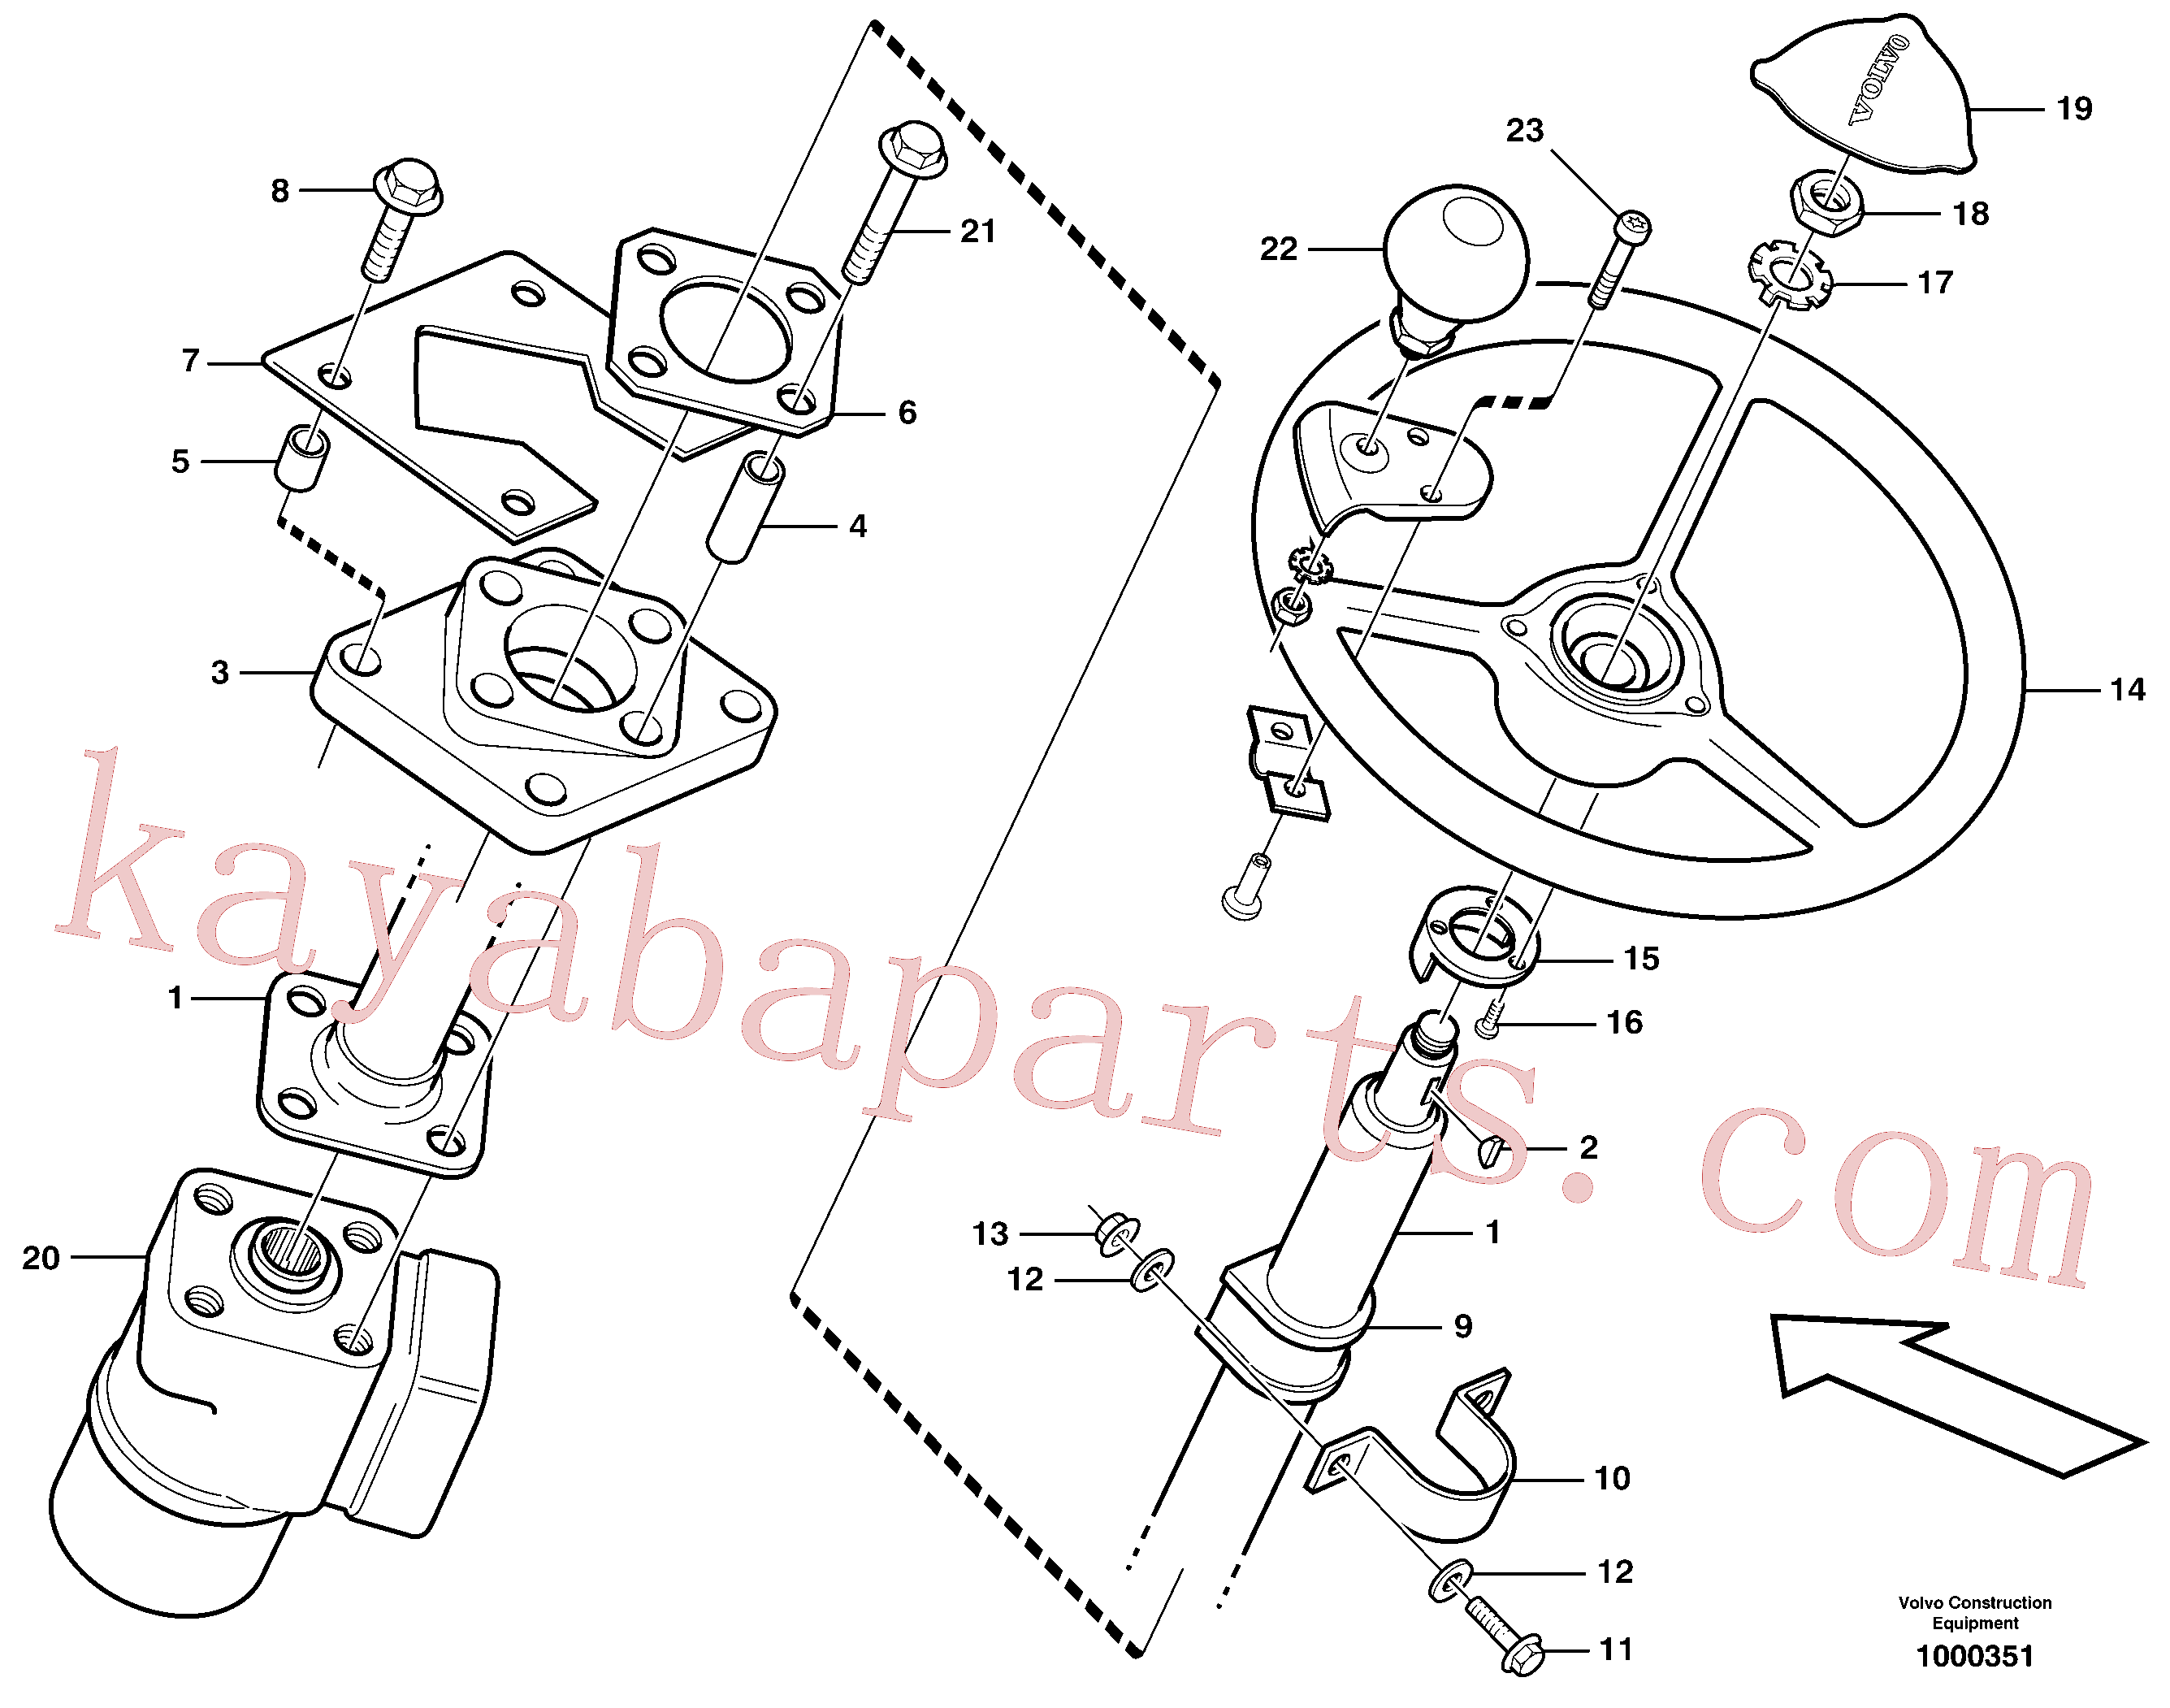 VOE13970950 for Volvo Steering column with fitting parts(1000351 assembly)